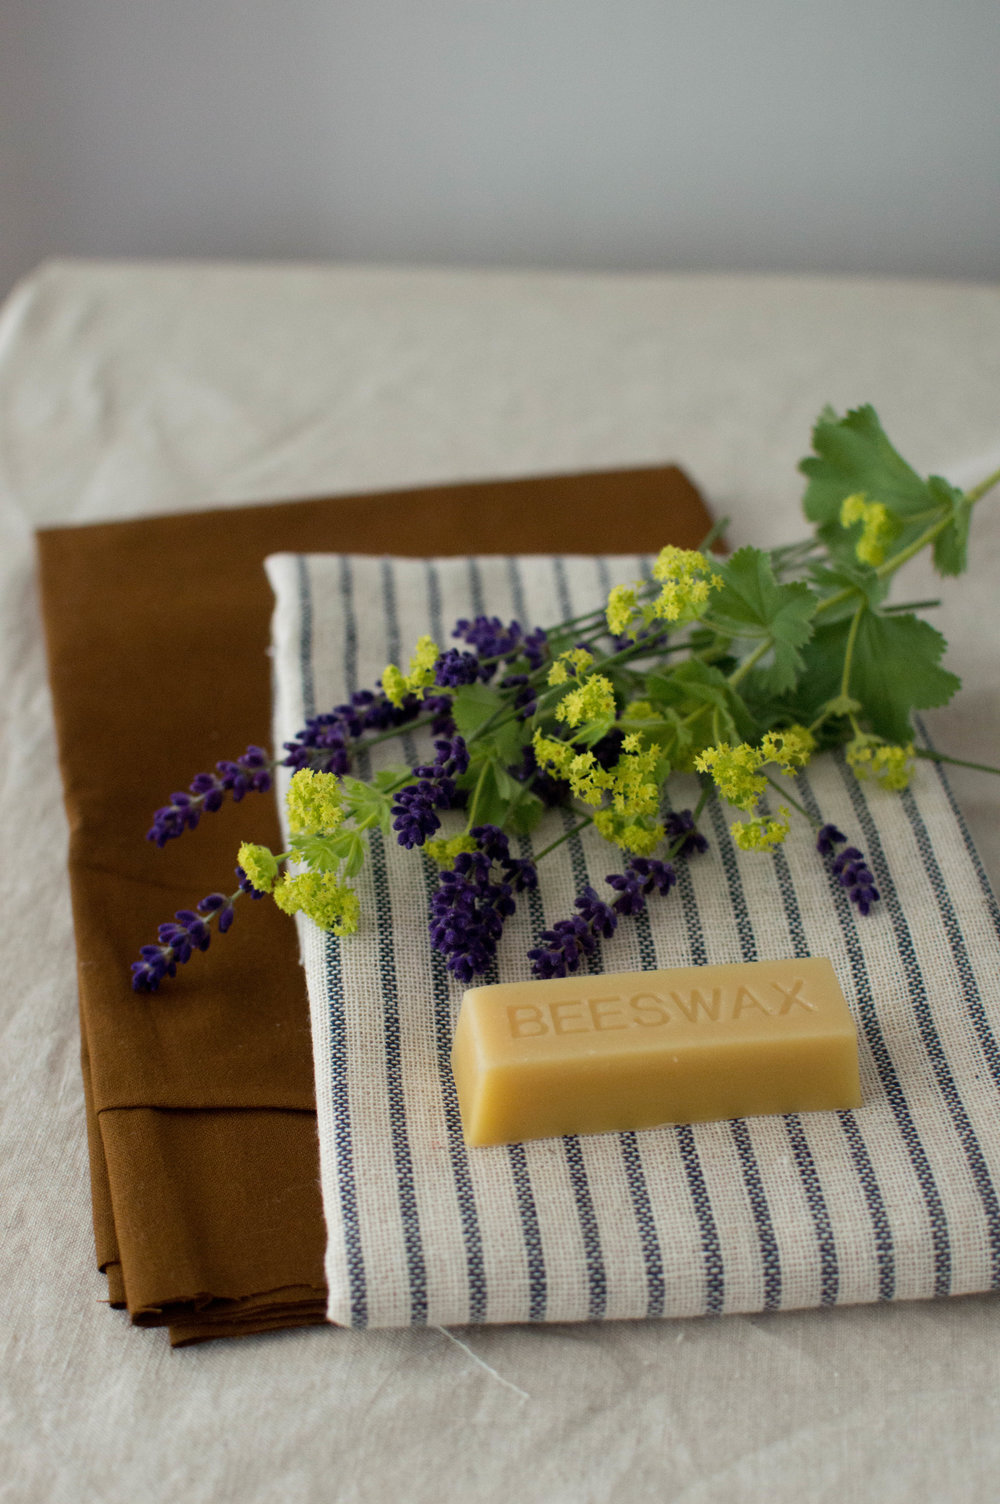 Beeswax Cotton Wraps  -  What you need: 1 stick of beeswax 100% cotton fabric cut to a variety of sizesbaking tray greaseproof paperpaintbrushgrater